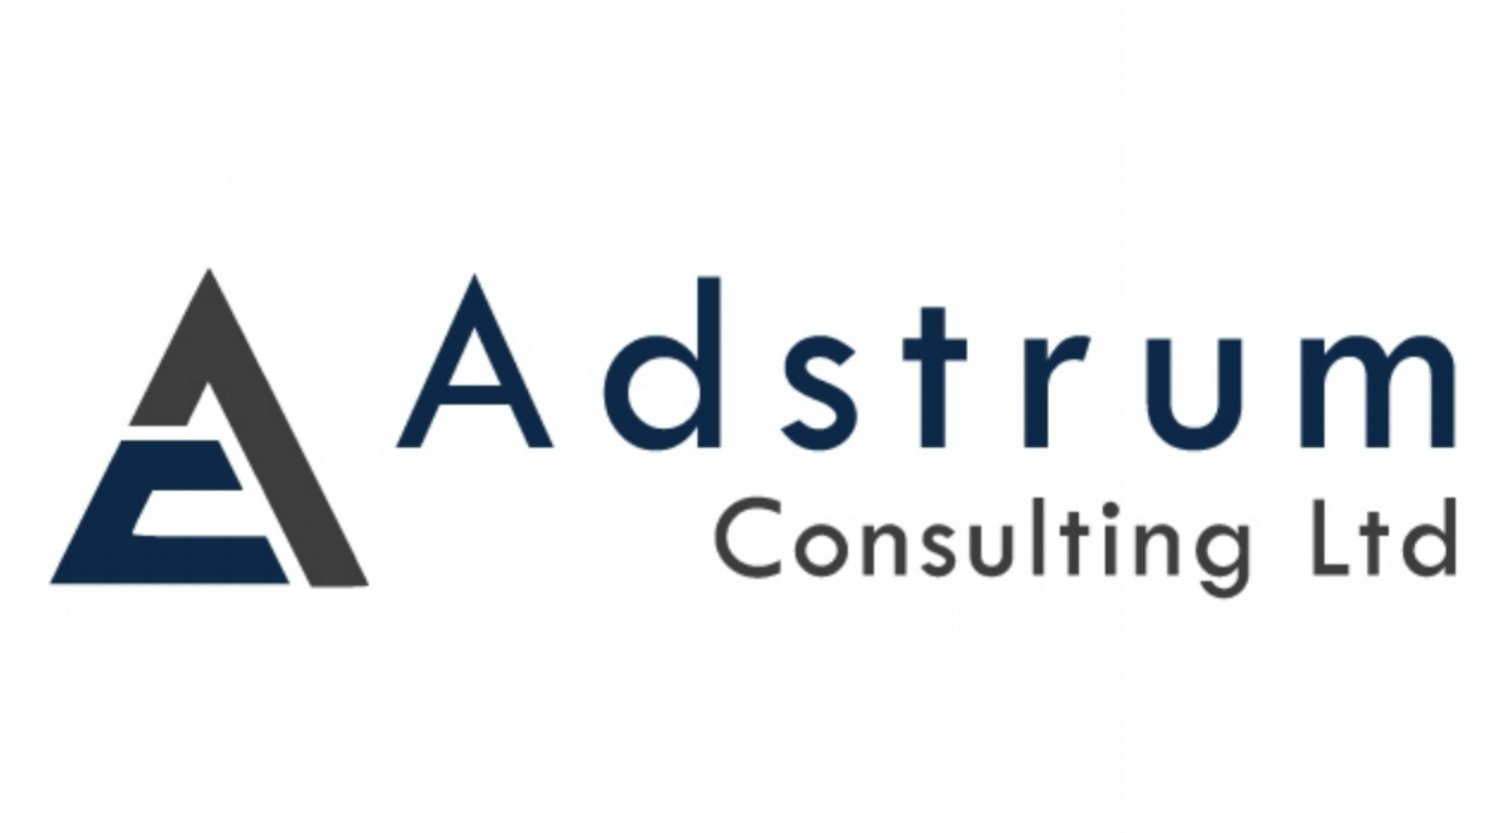 Adstrum Consulting Ltd